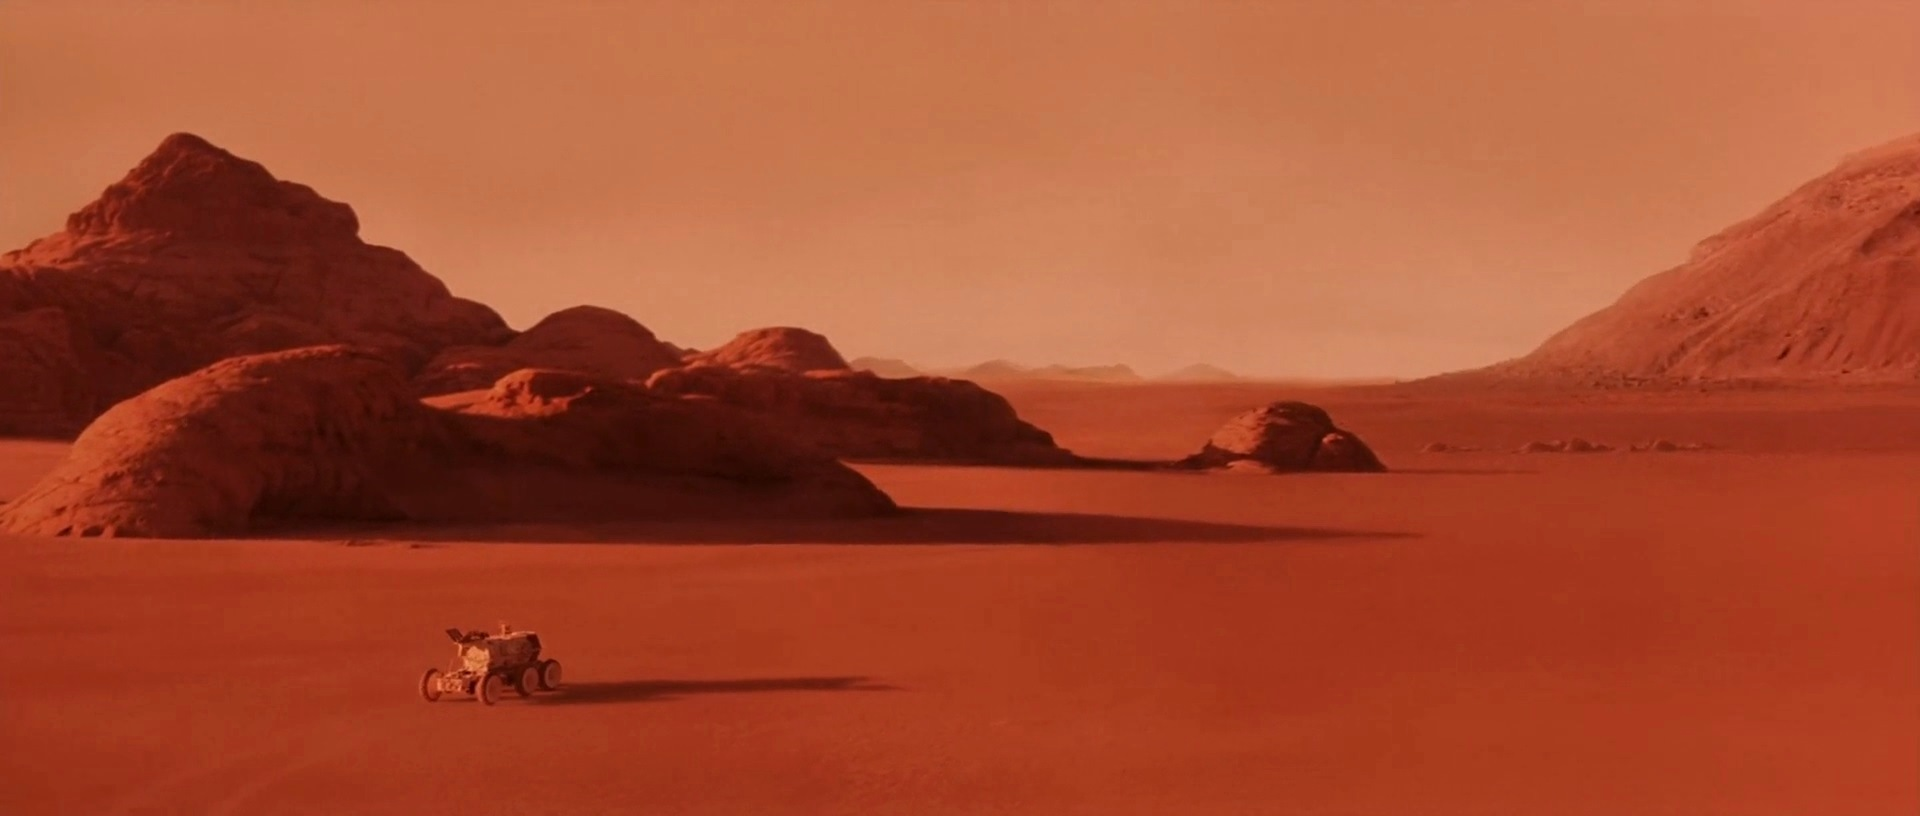 The Martian surface in Mission to Mars (2000)